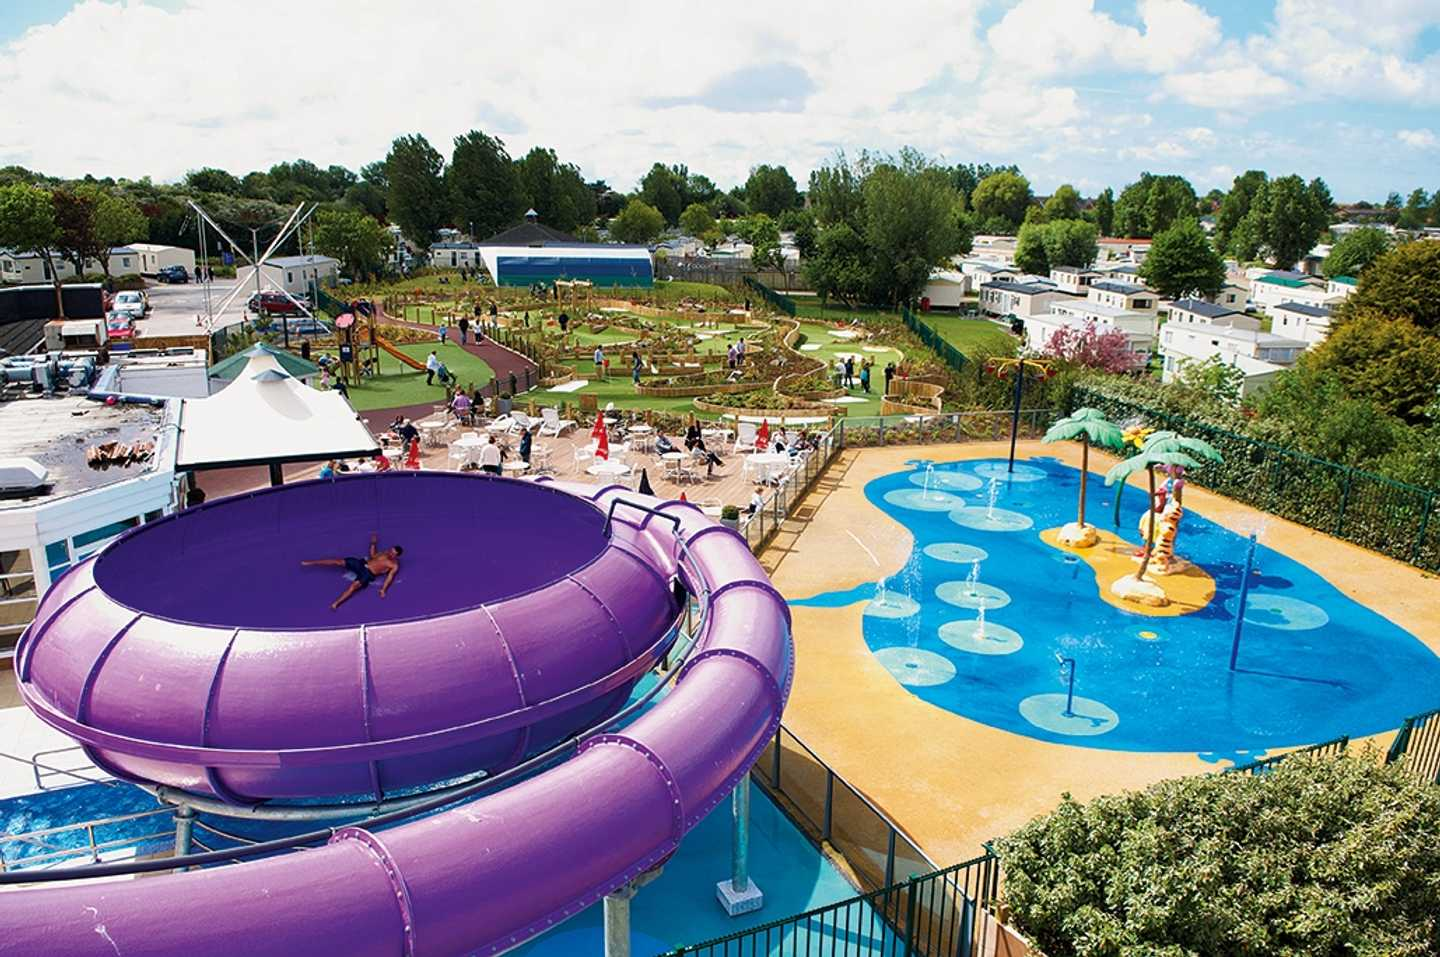 A view of our Space Bowl flume and colourful outdoor SplashZone along with our mini golf course